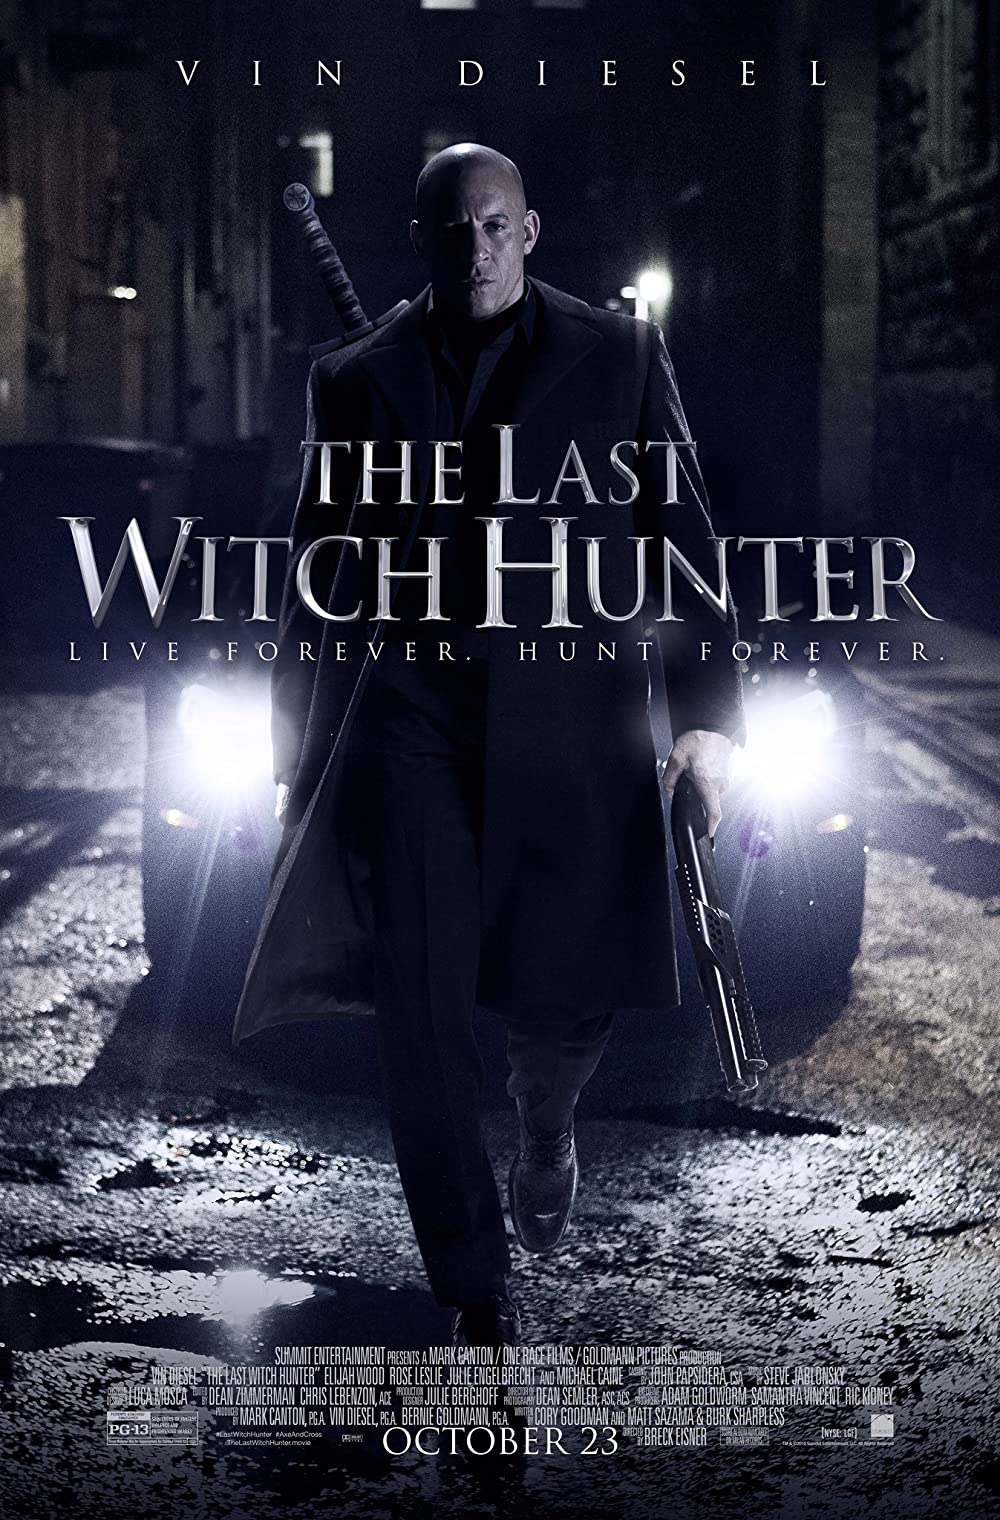 The Last Witch Hunter 2015 Hindi Dual Audio 720p BluRay ESub 1.2GB Download